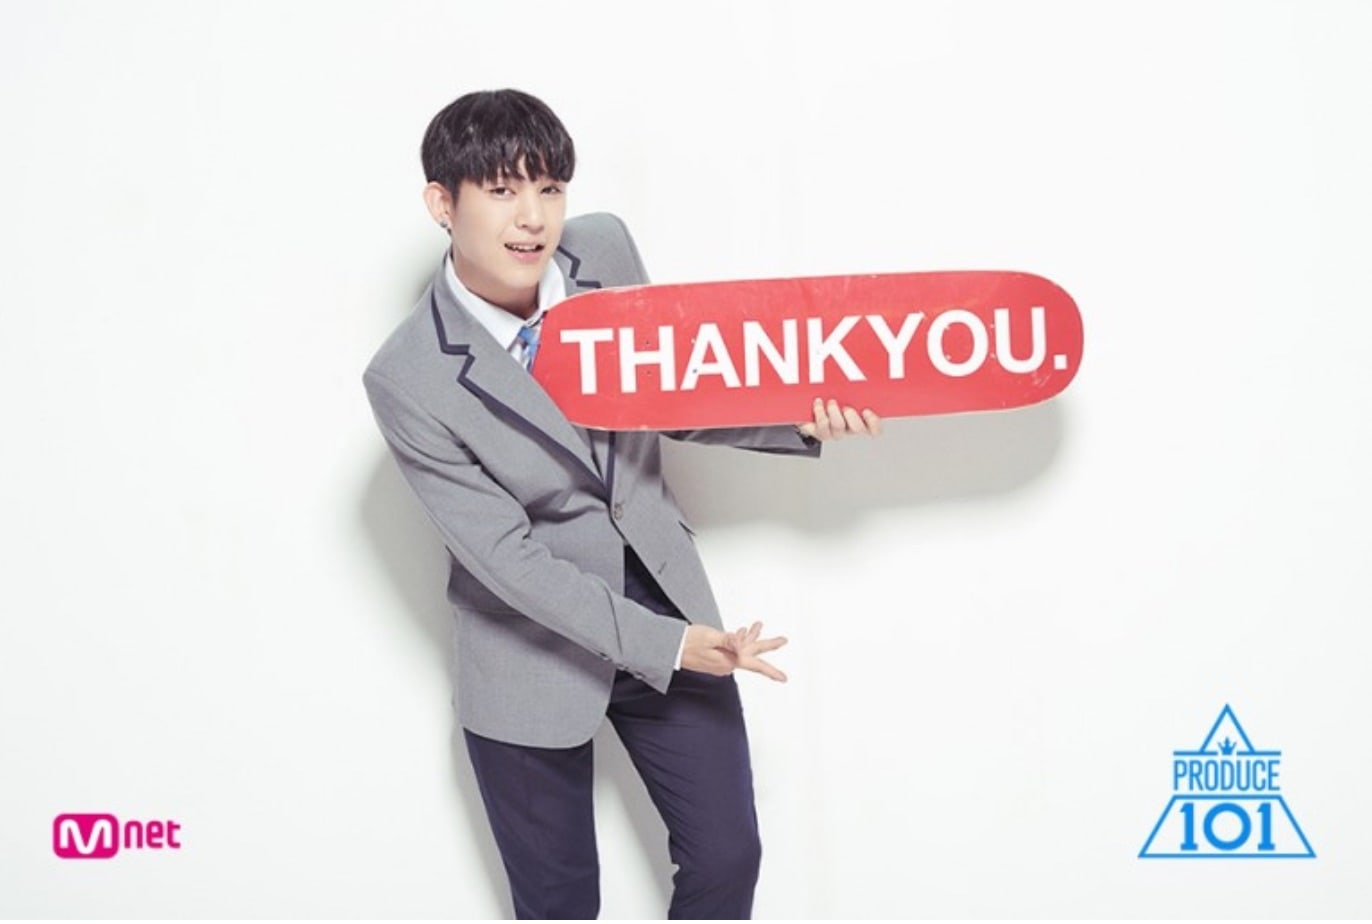 """Uplifting Story Of """"Produce 101 Season 2"""" Contestant Jo Jin Hyung Warms Hearts Of Viewers"""